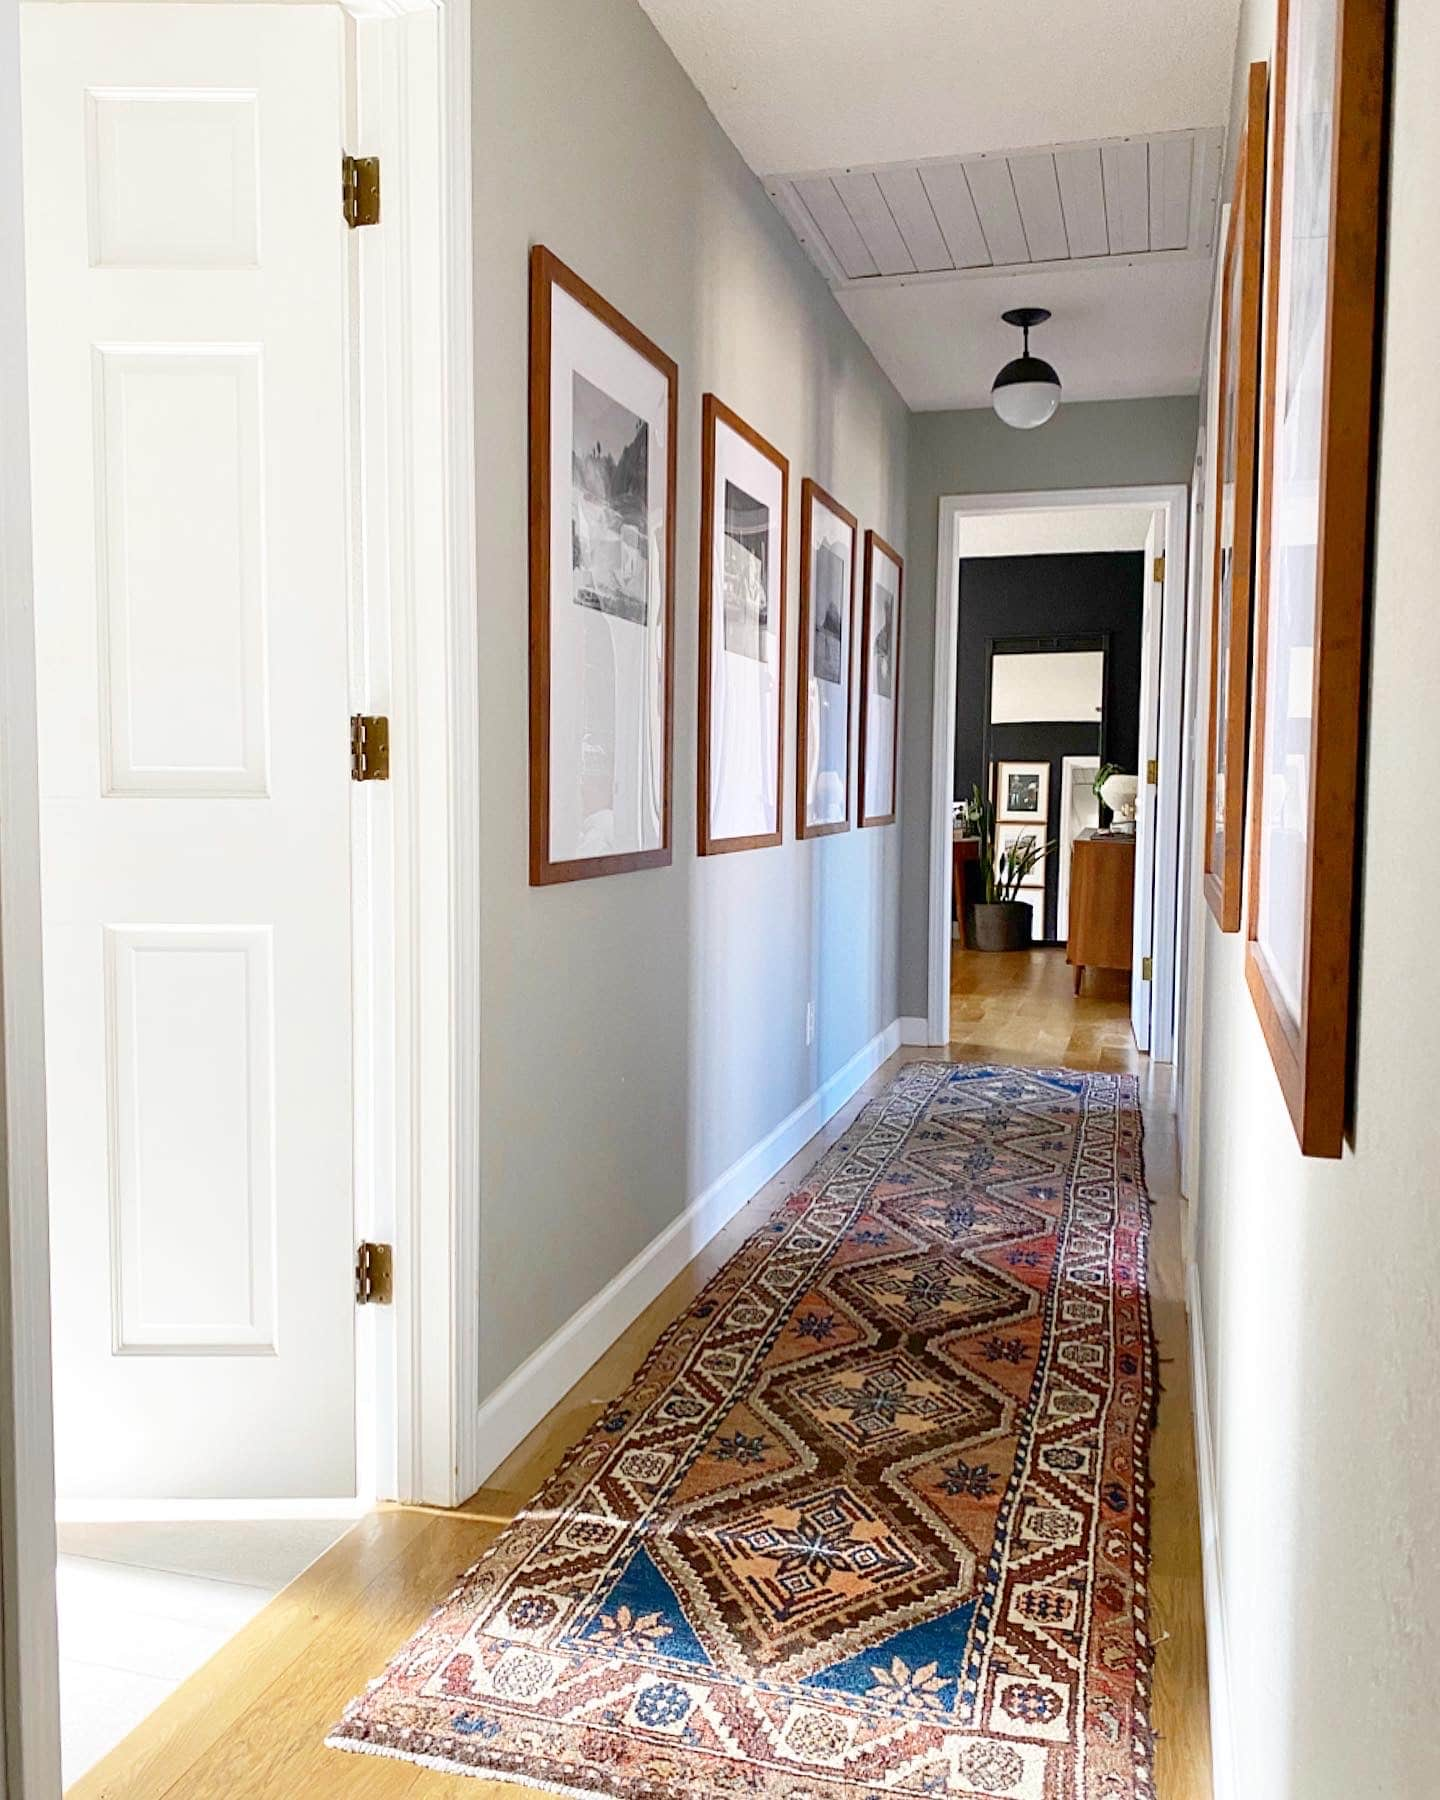 Persian rug in hallway | Where to buy affordable vintage rug roundup